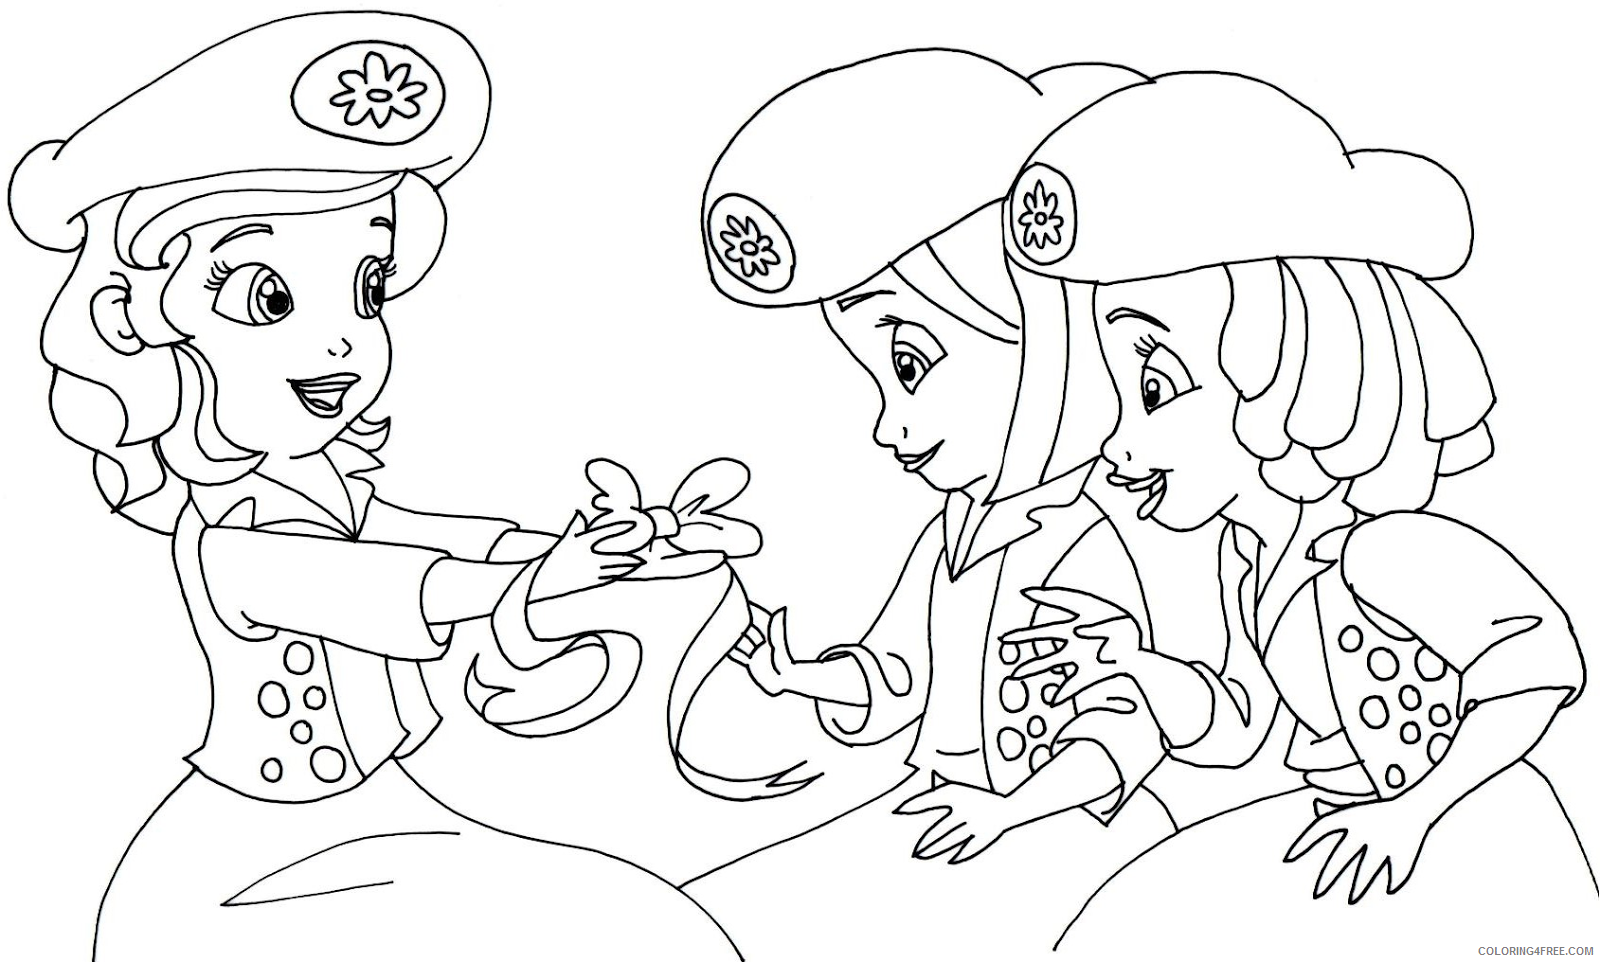 sofia the first coloring pages the buttercups Coloring4free